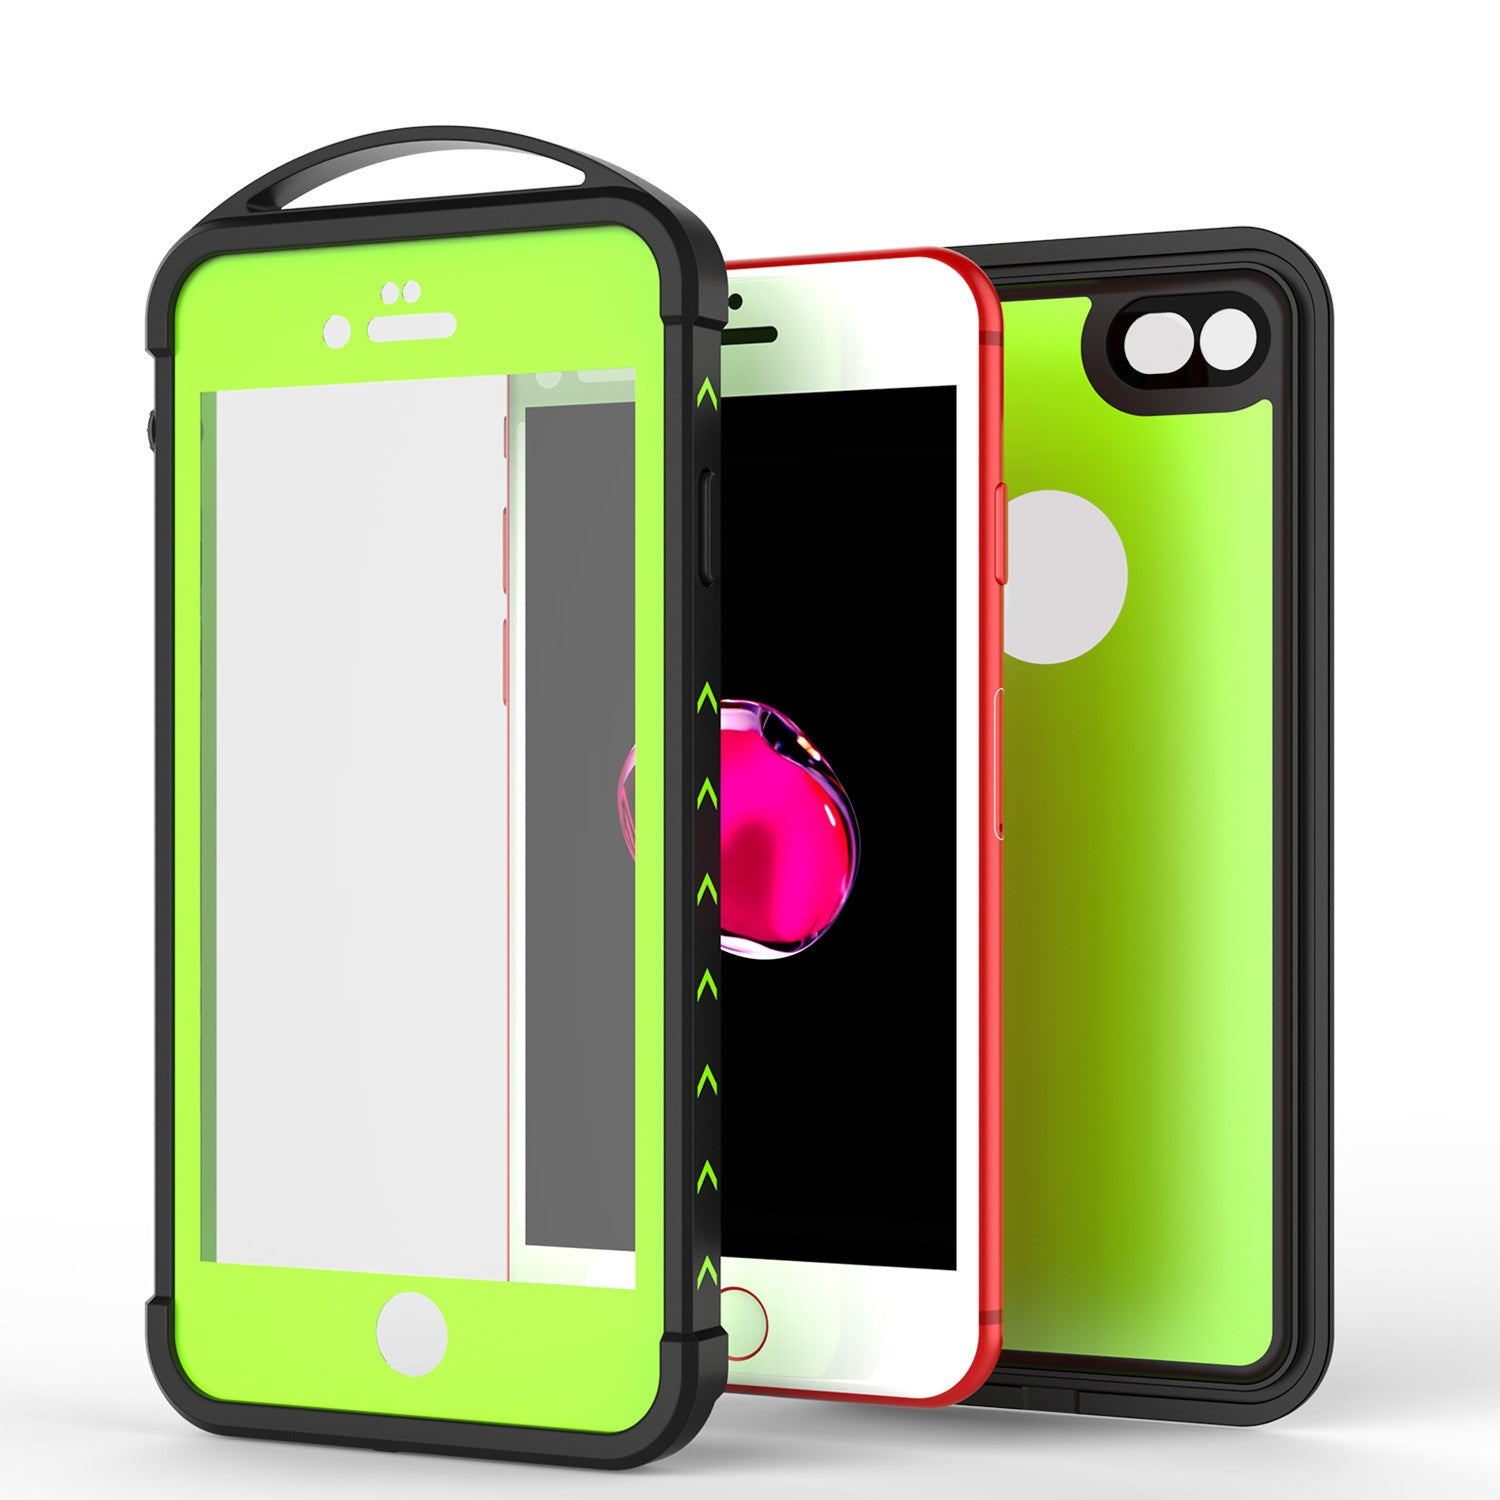 iPhone 7 Waterproof Case, Punkcase ALPINE Series, Light Green | Heavy Duty Armor Cover